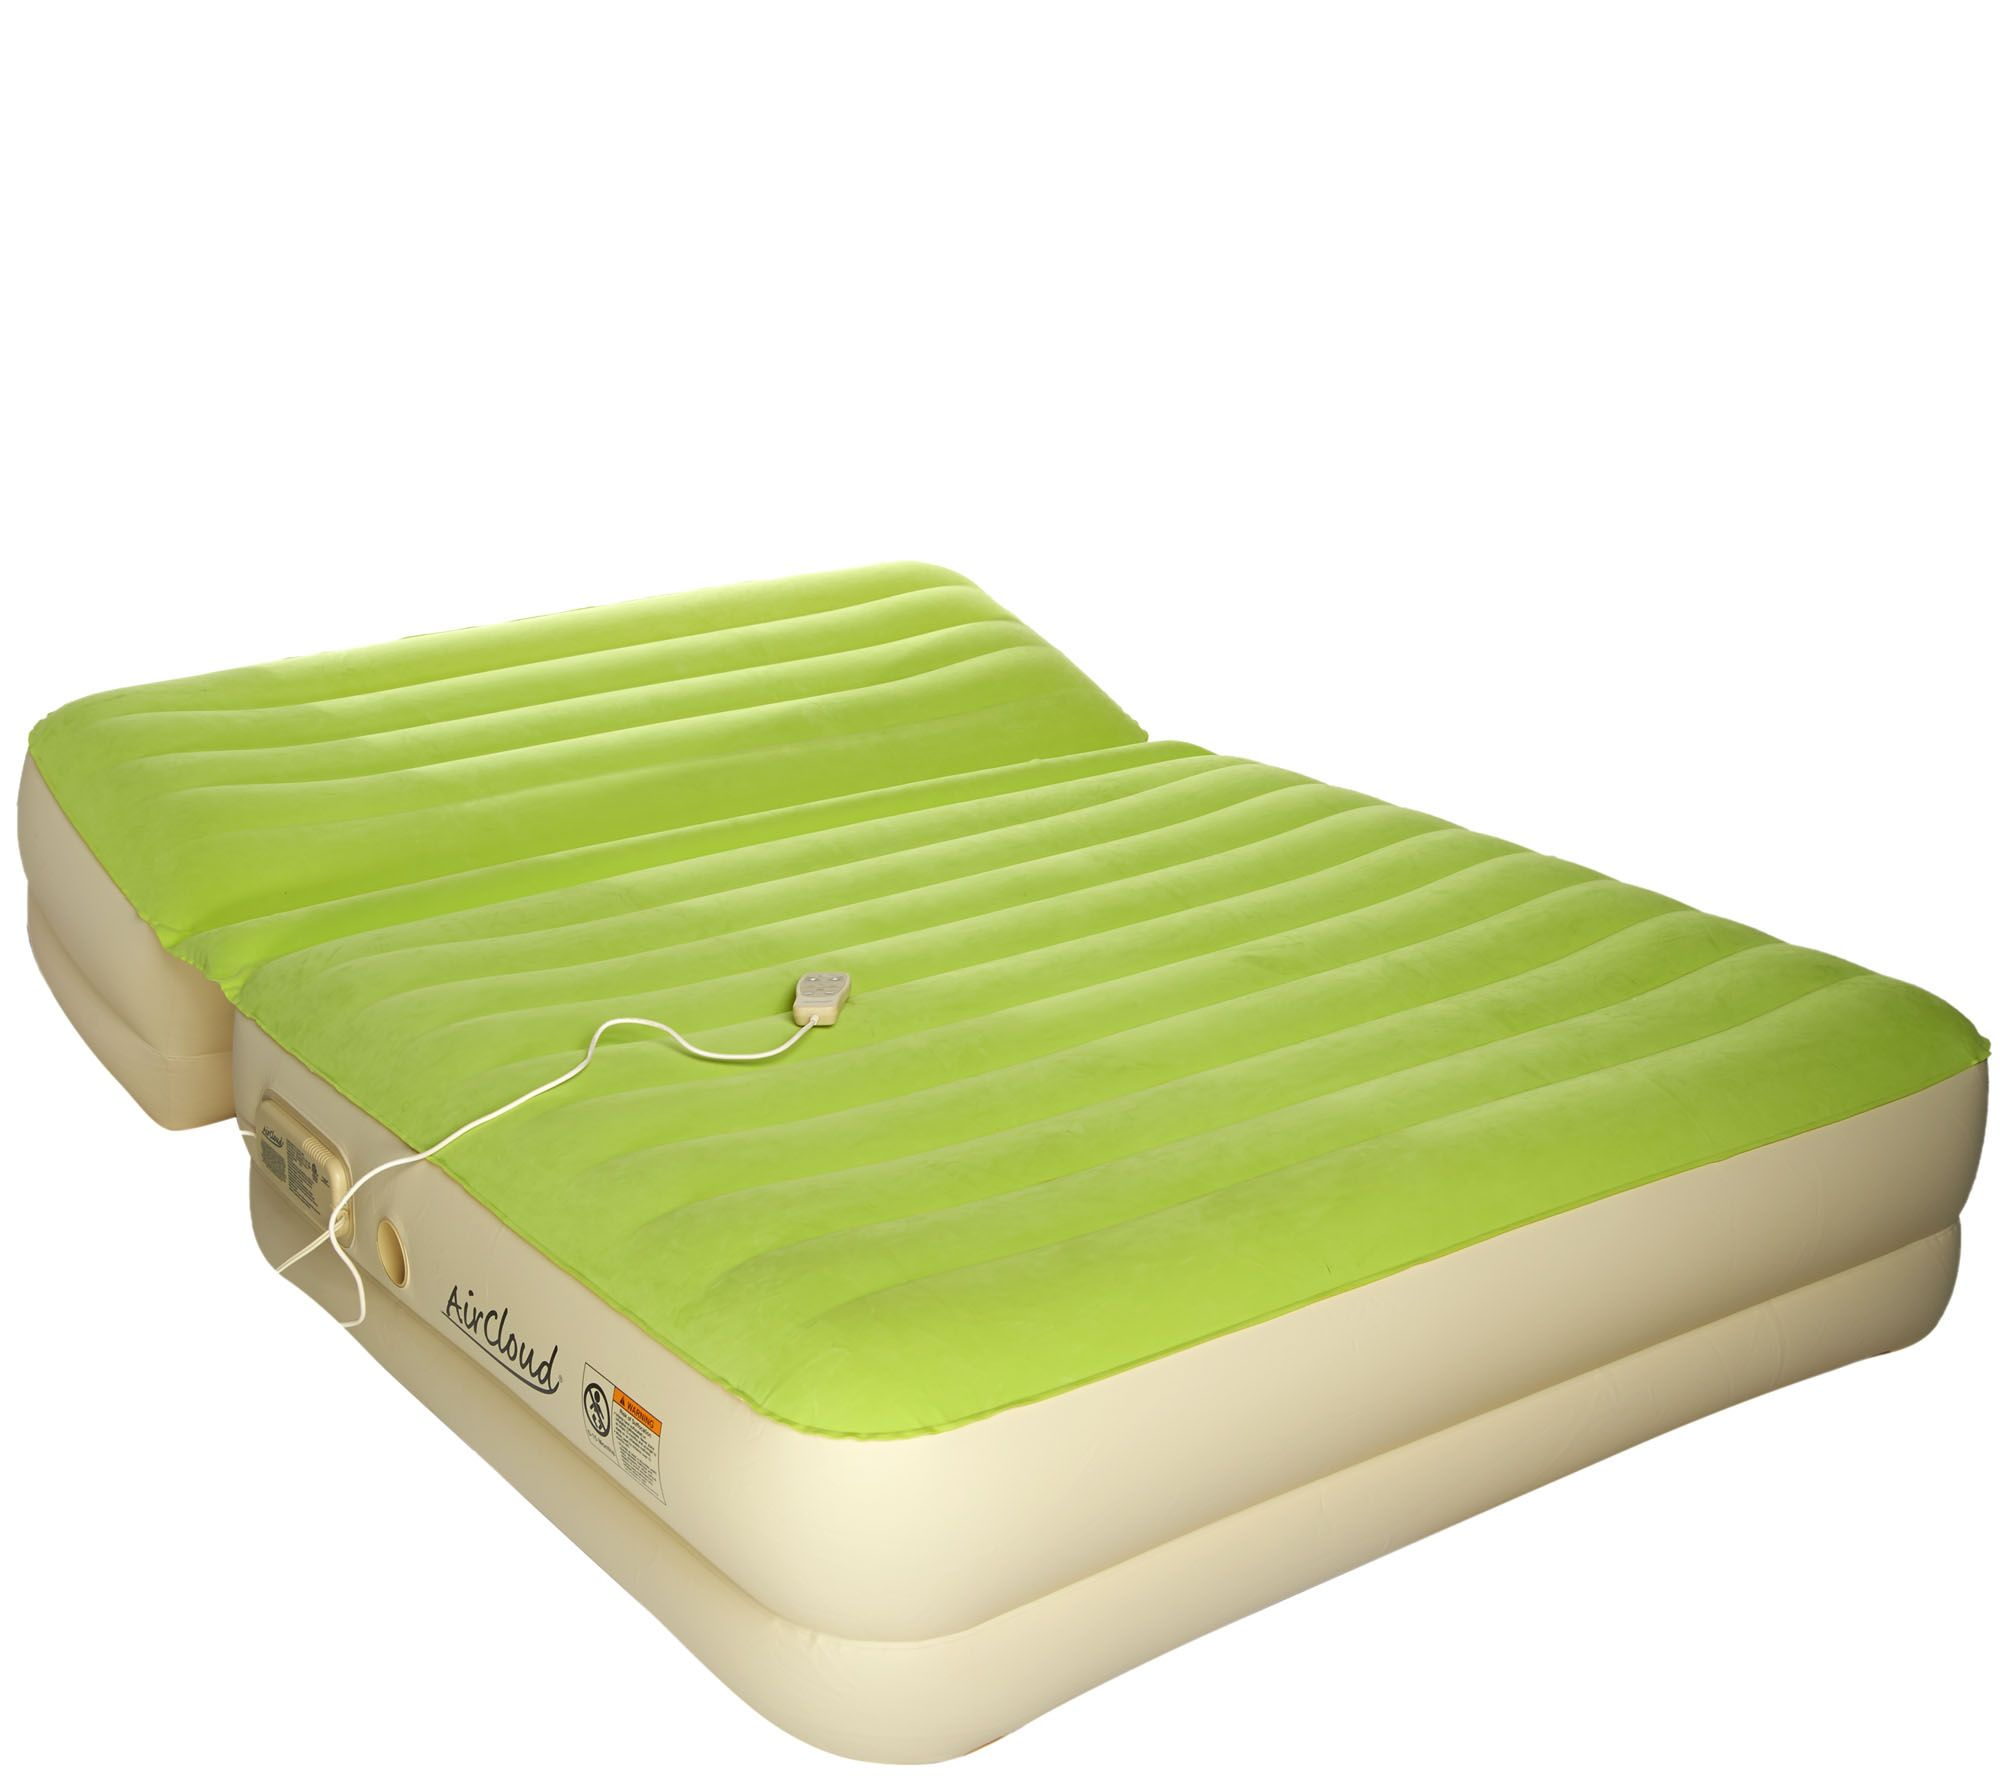 beds bed queen downy inflatable airbed classic intex mattress pin